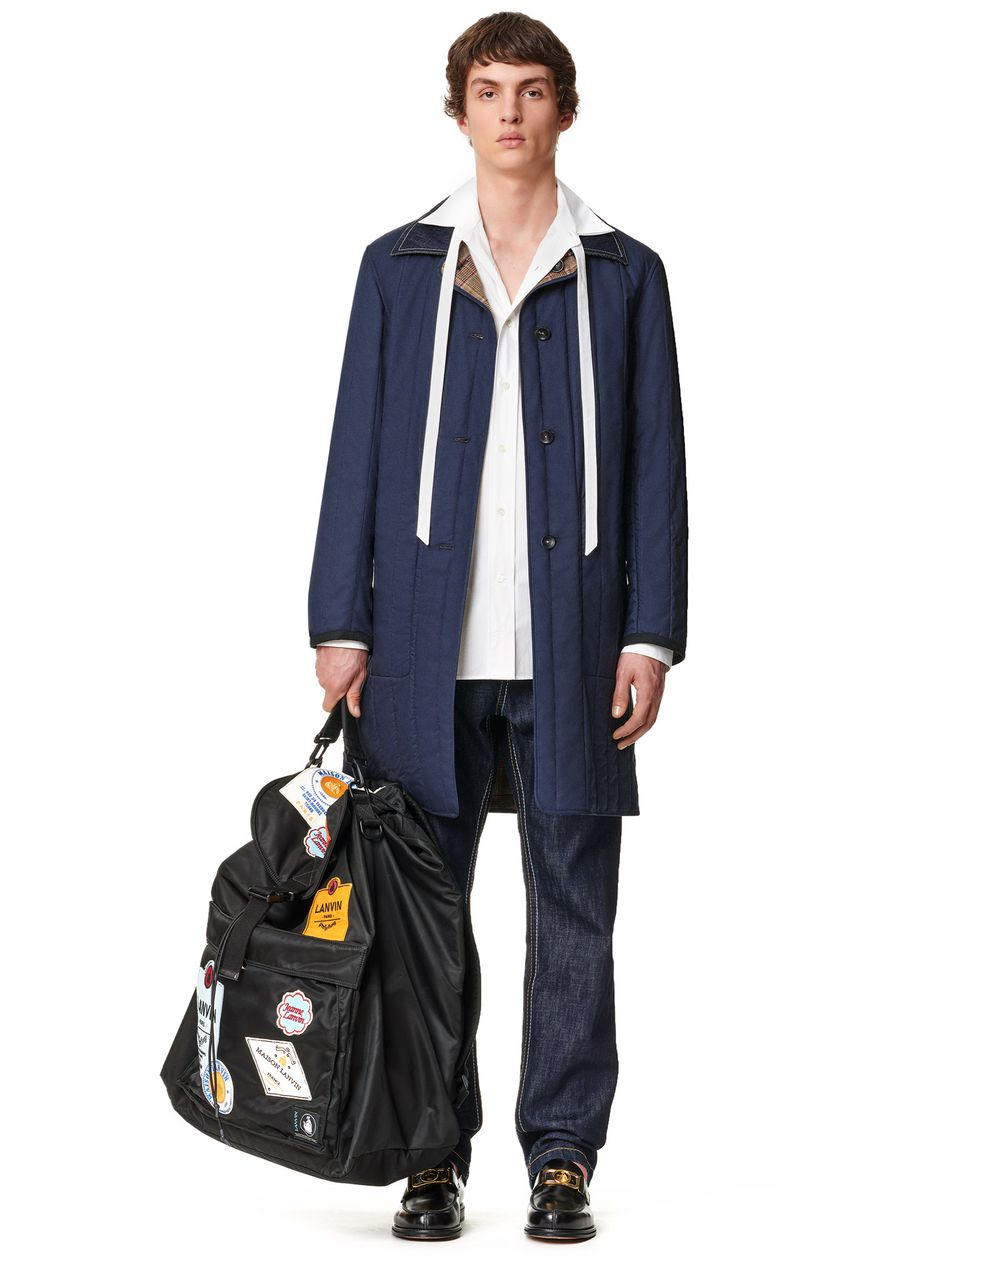 RVERSIBLE QUILTED CARCOAT - Lanvin